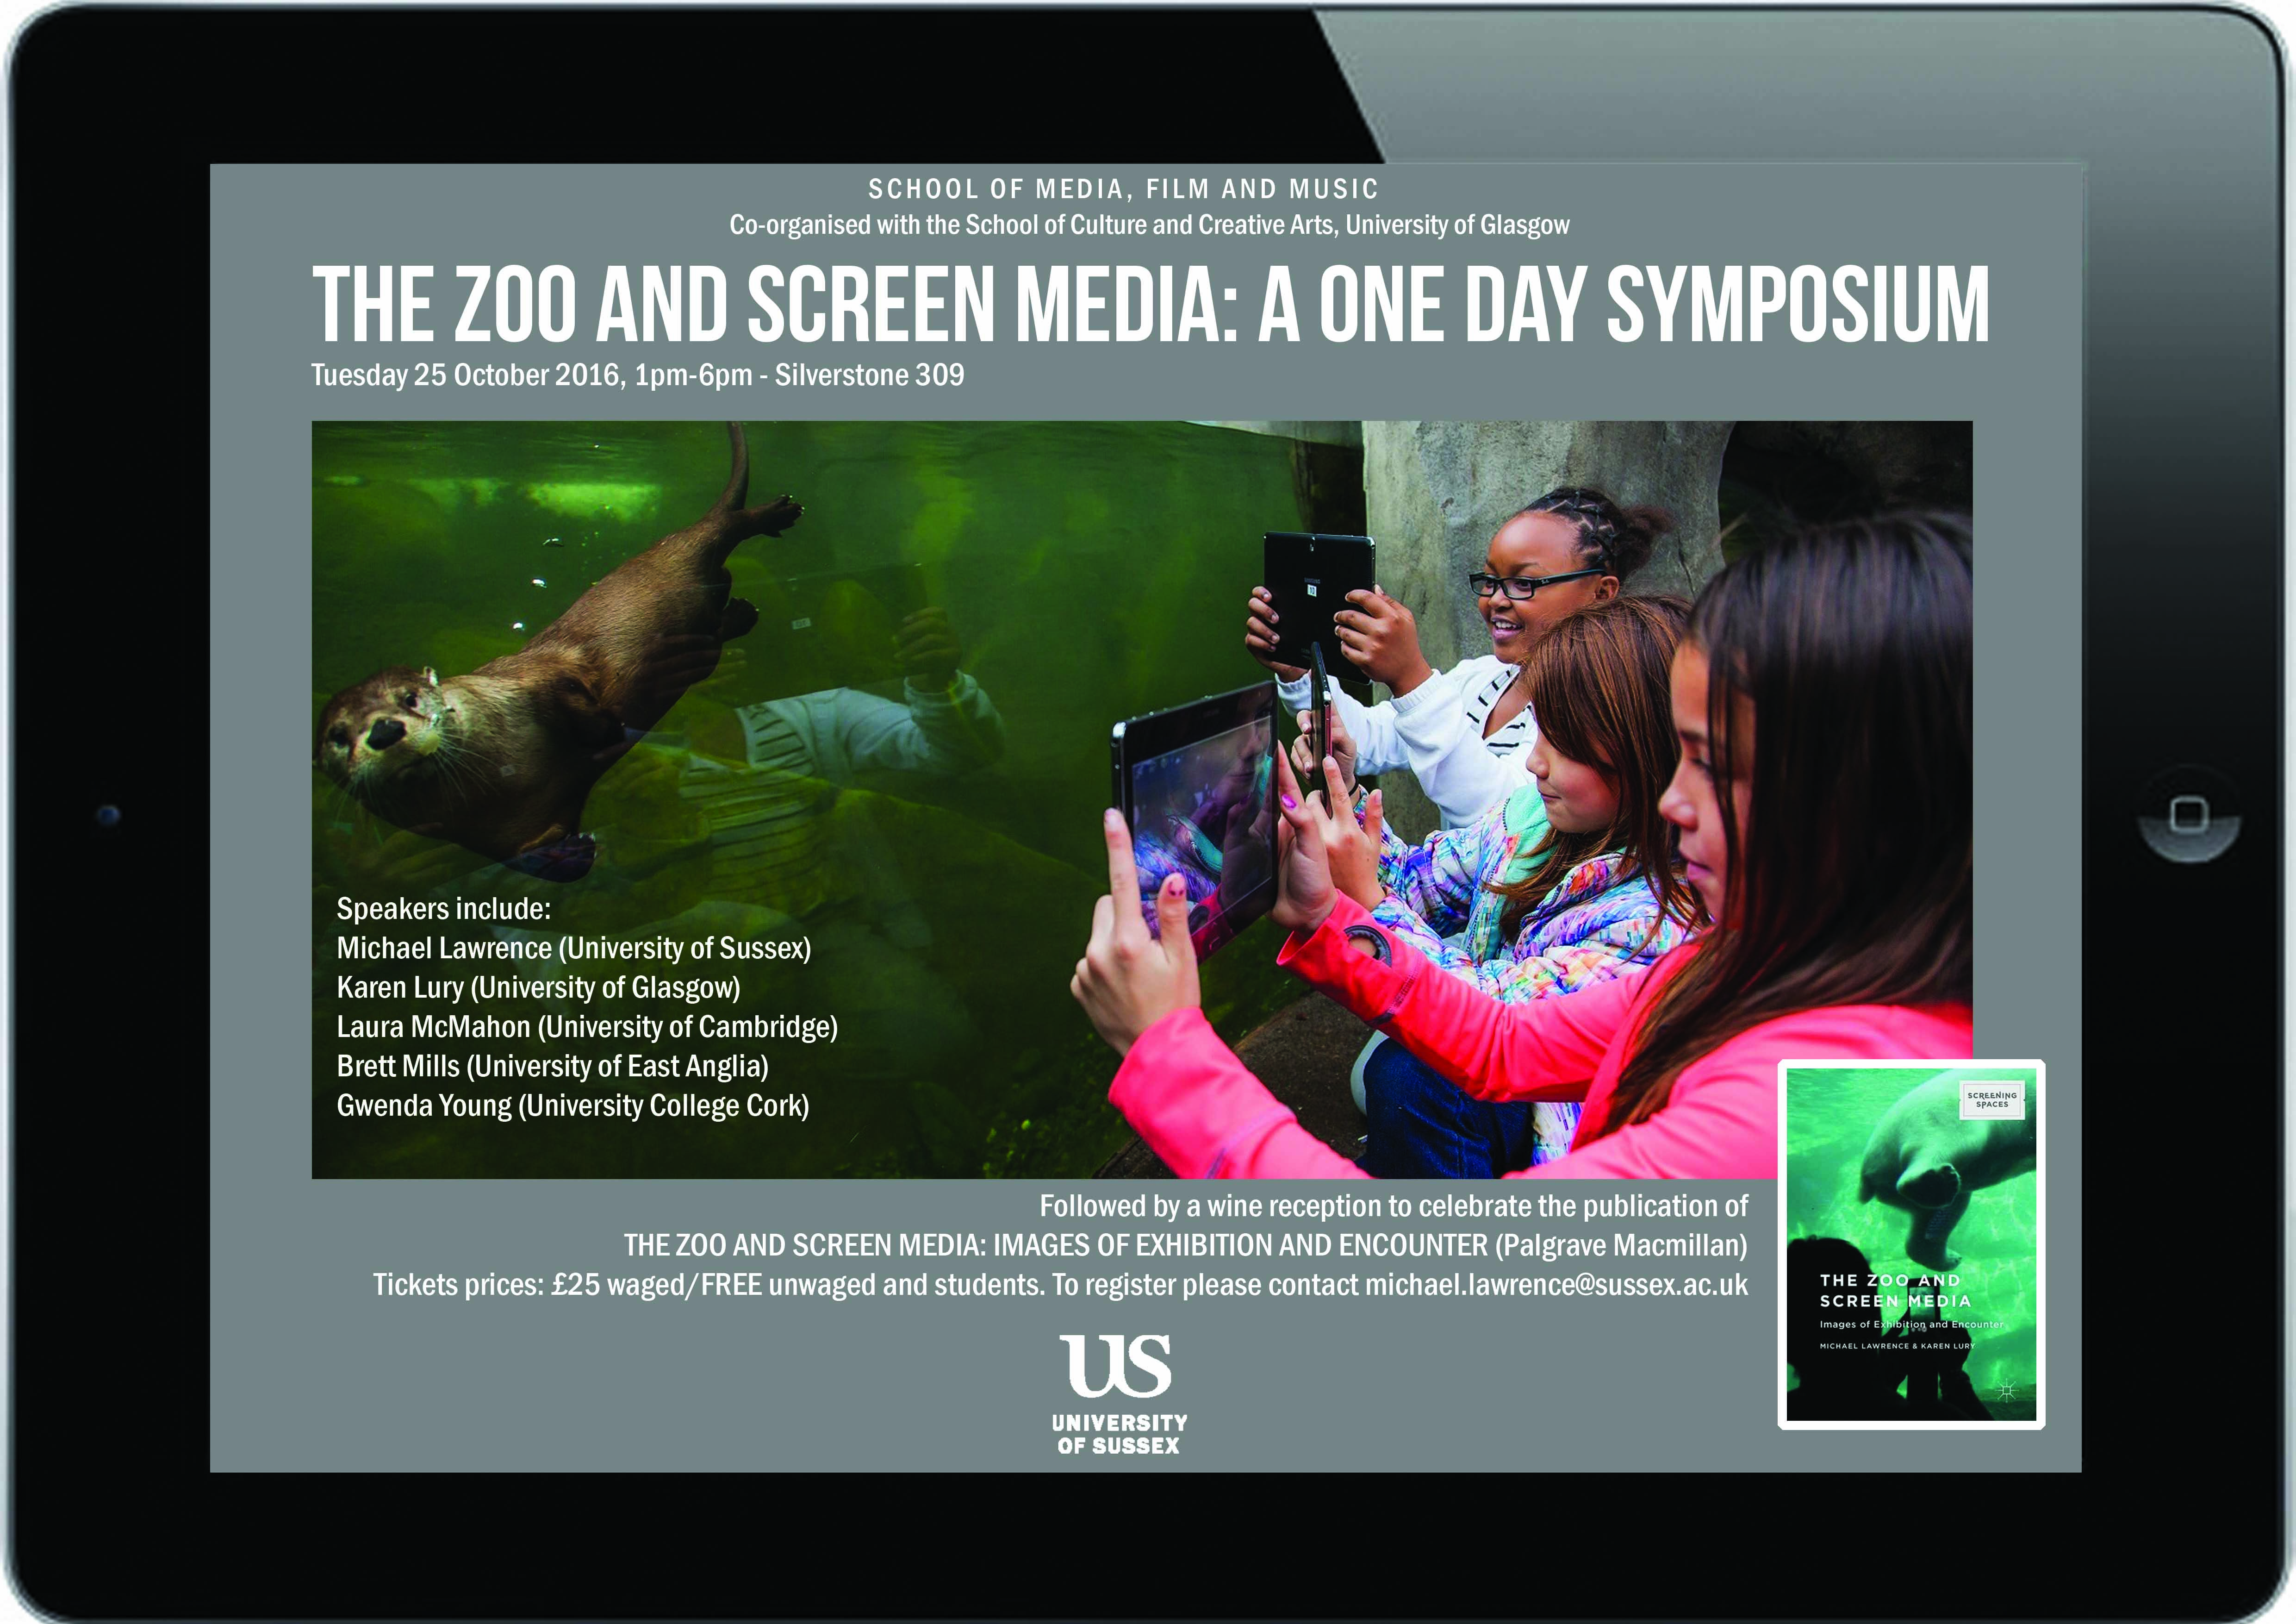 The Zoo and Screen Media: A One Day Symposium. Tuesday 25th Oct, 1-6pm.